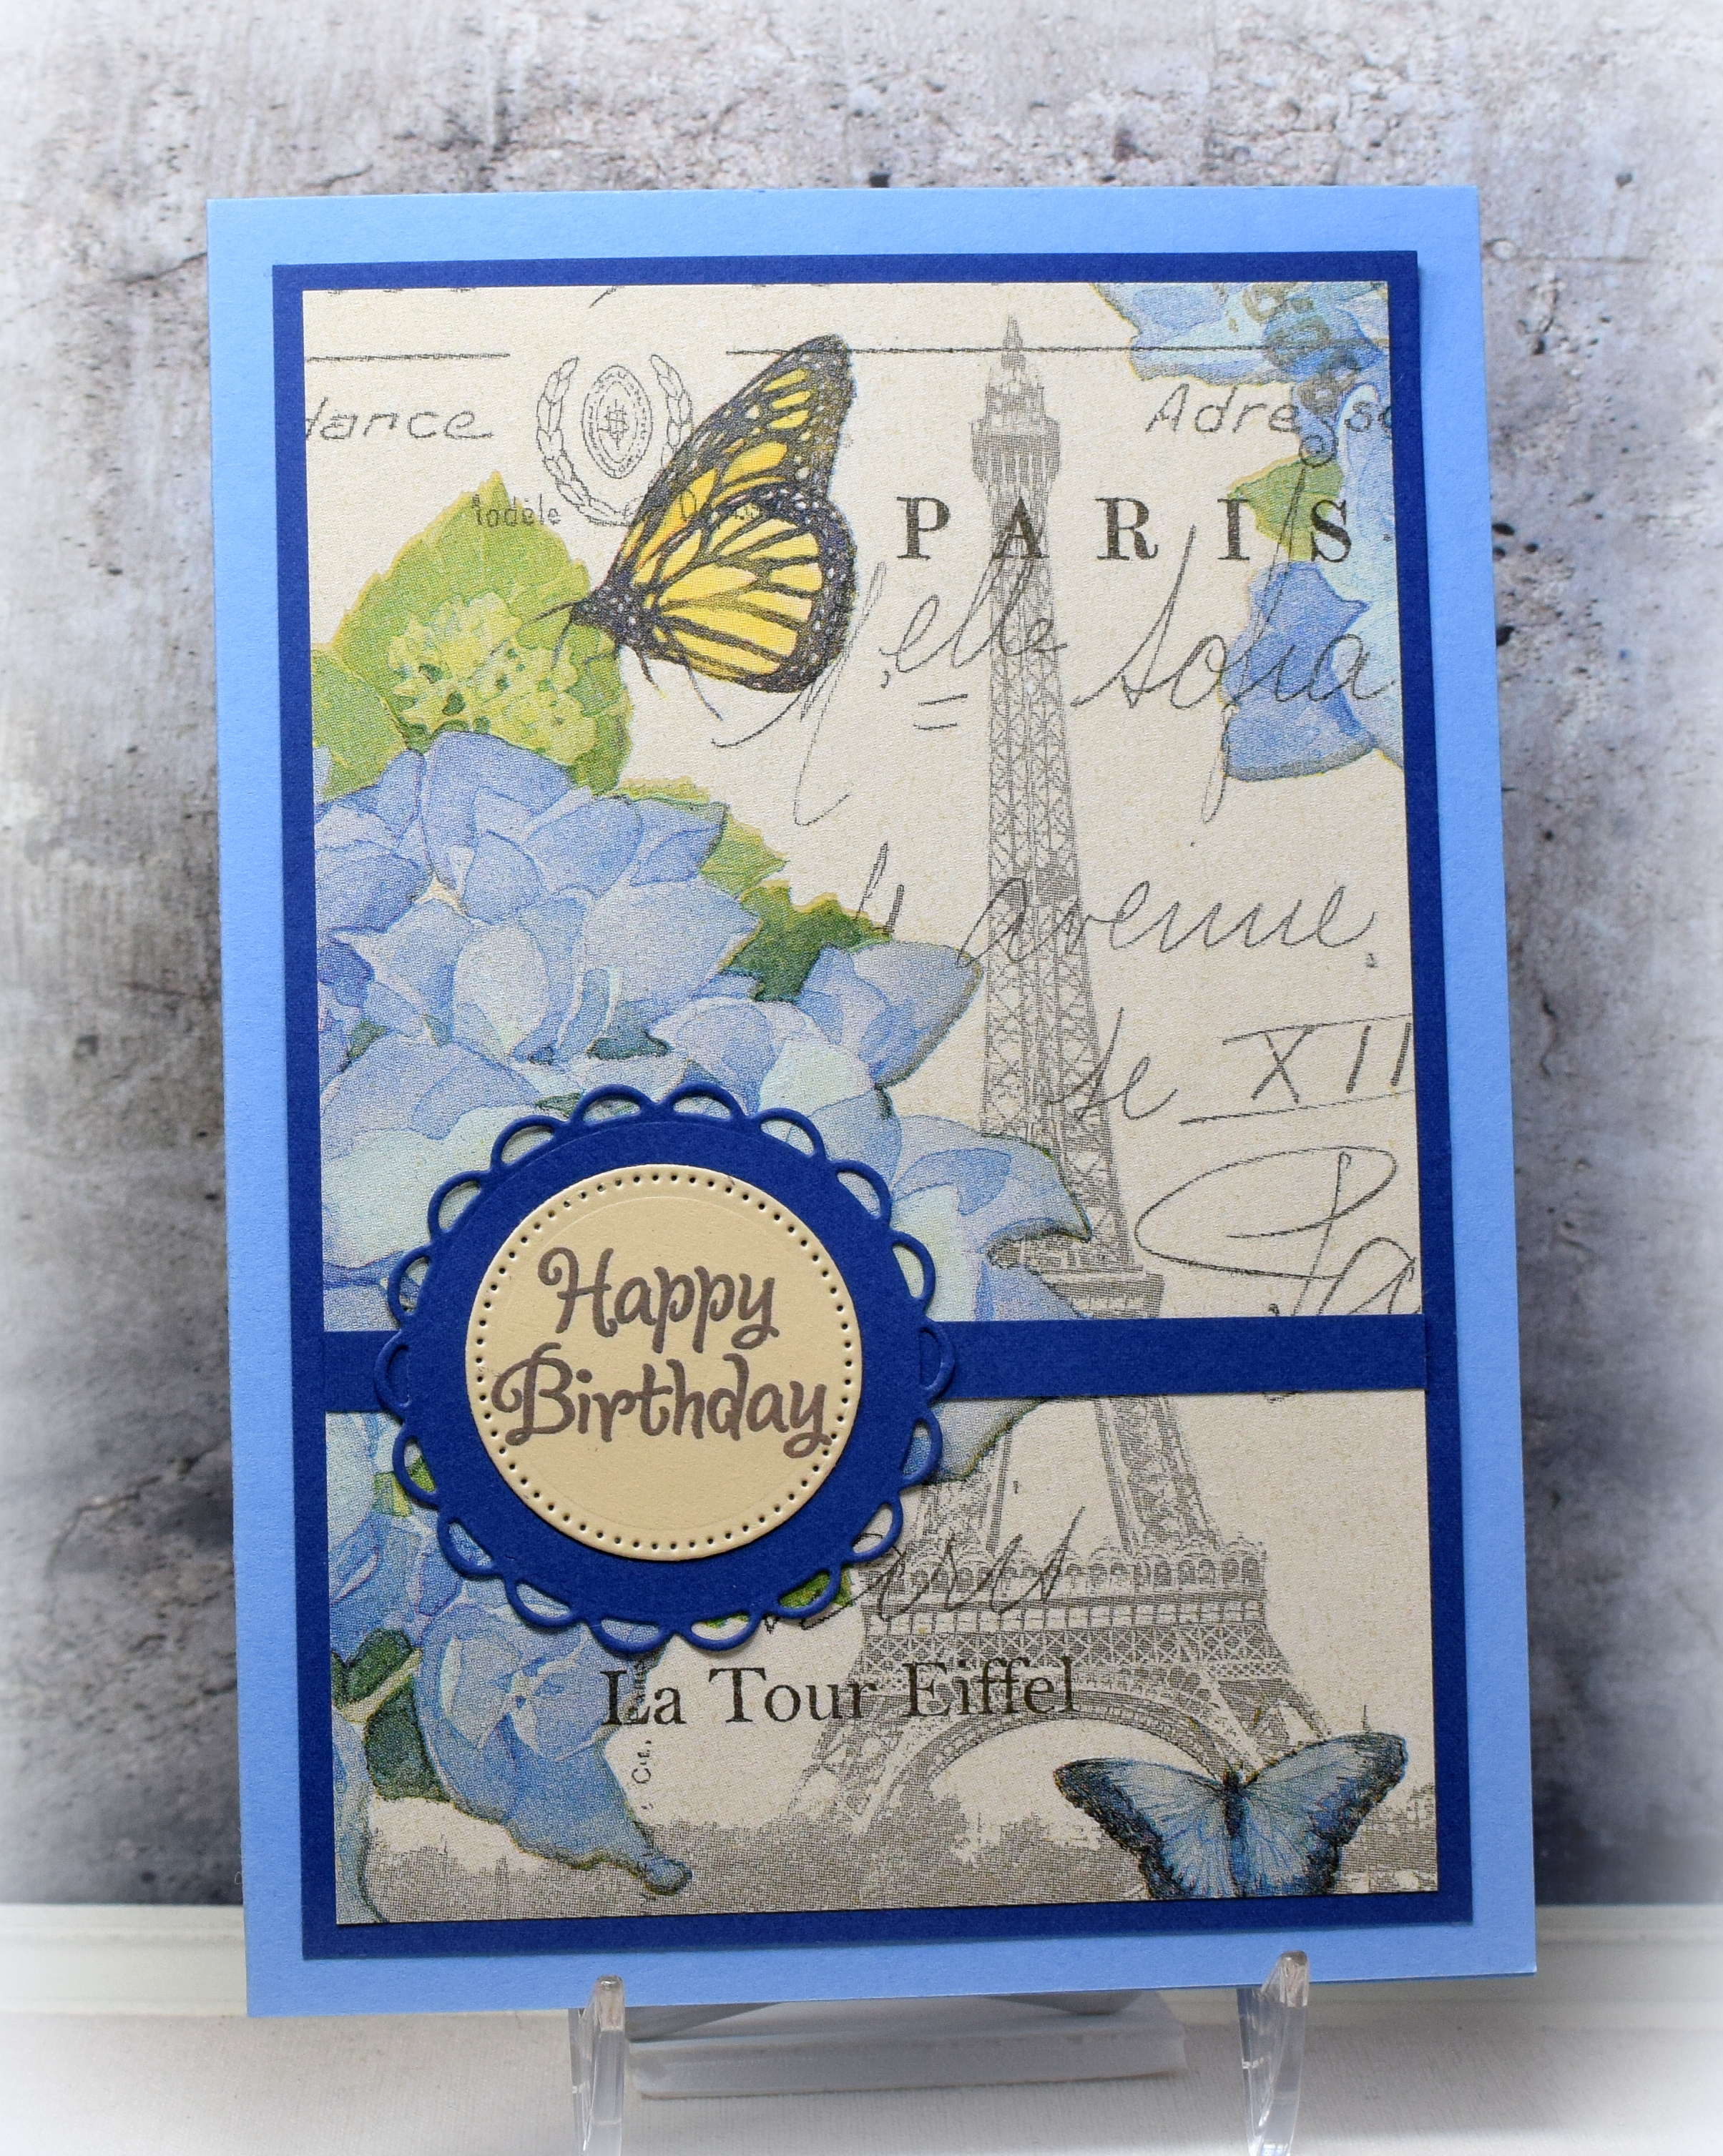 Paris Napkin Birthday Card  I Played With Paper Today!